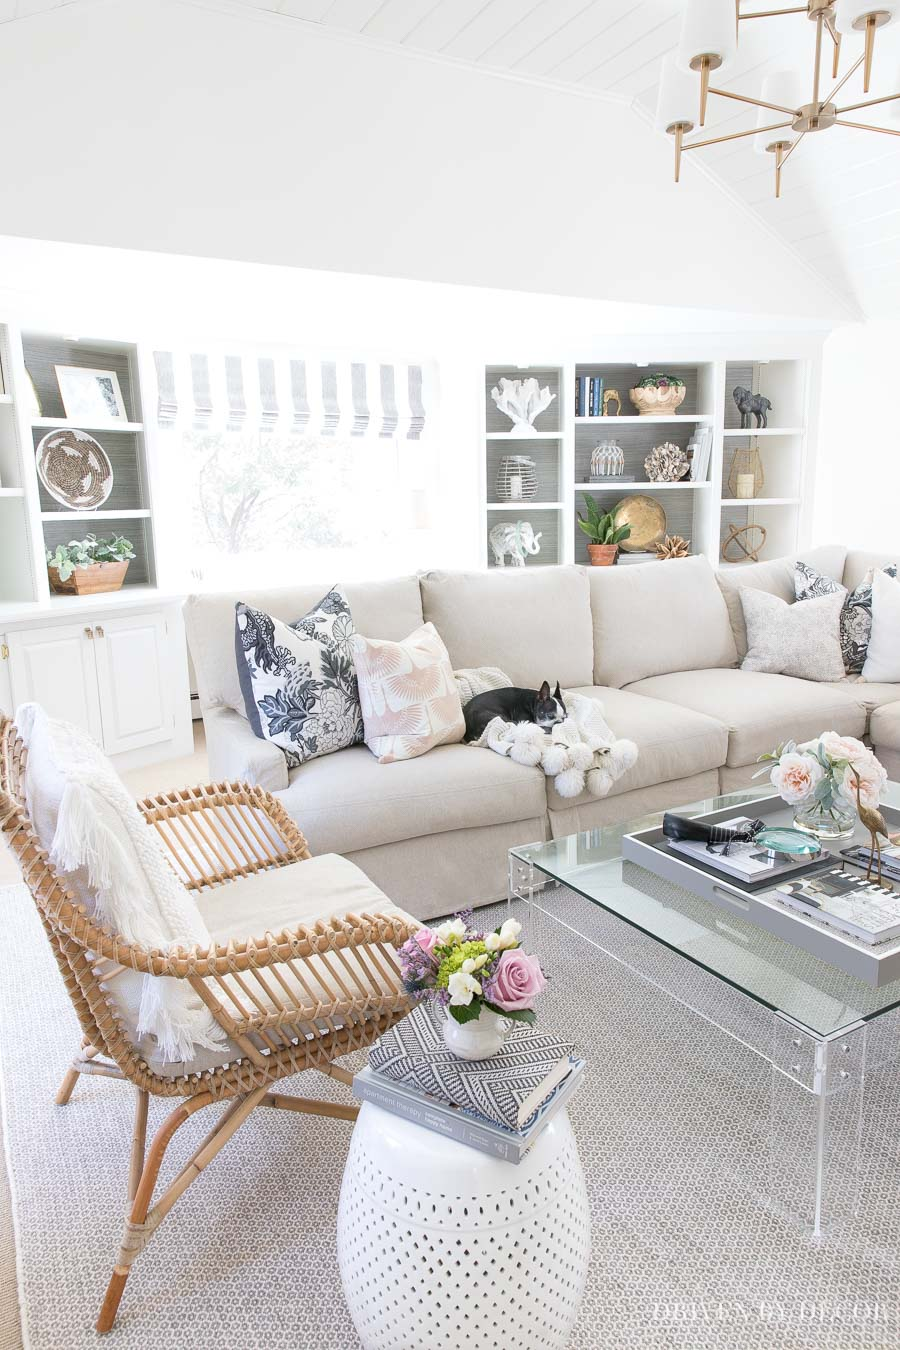 Must Have Tips For Decorating Your Living Room For Spring With Furniture  And Accessories That